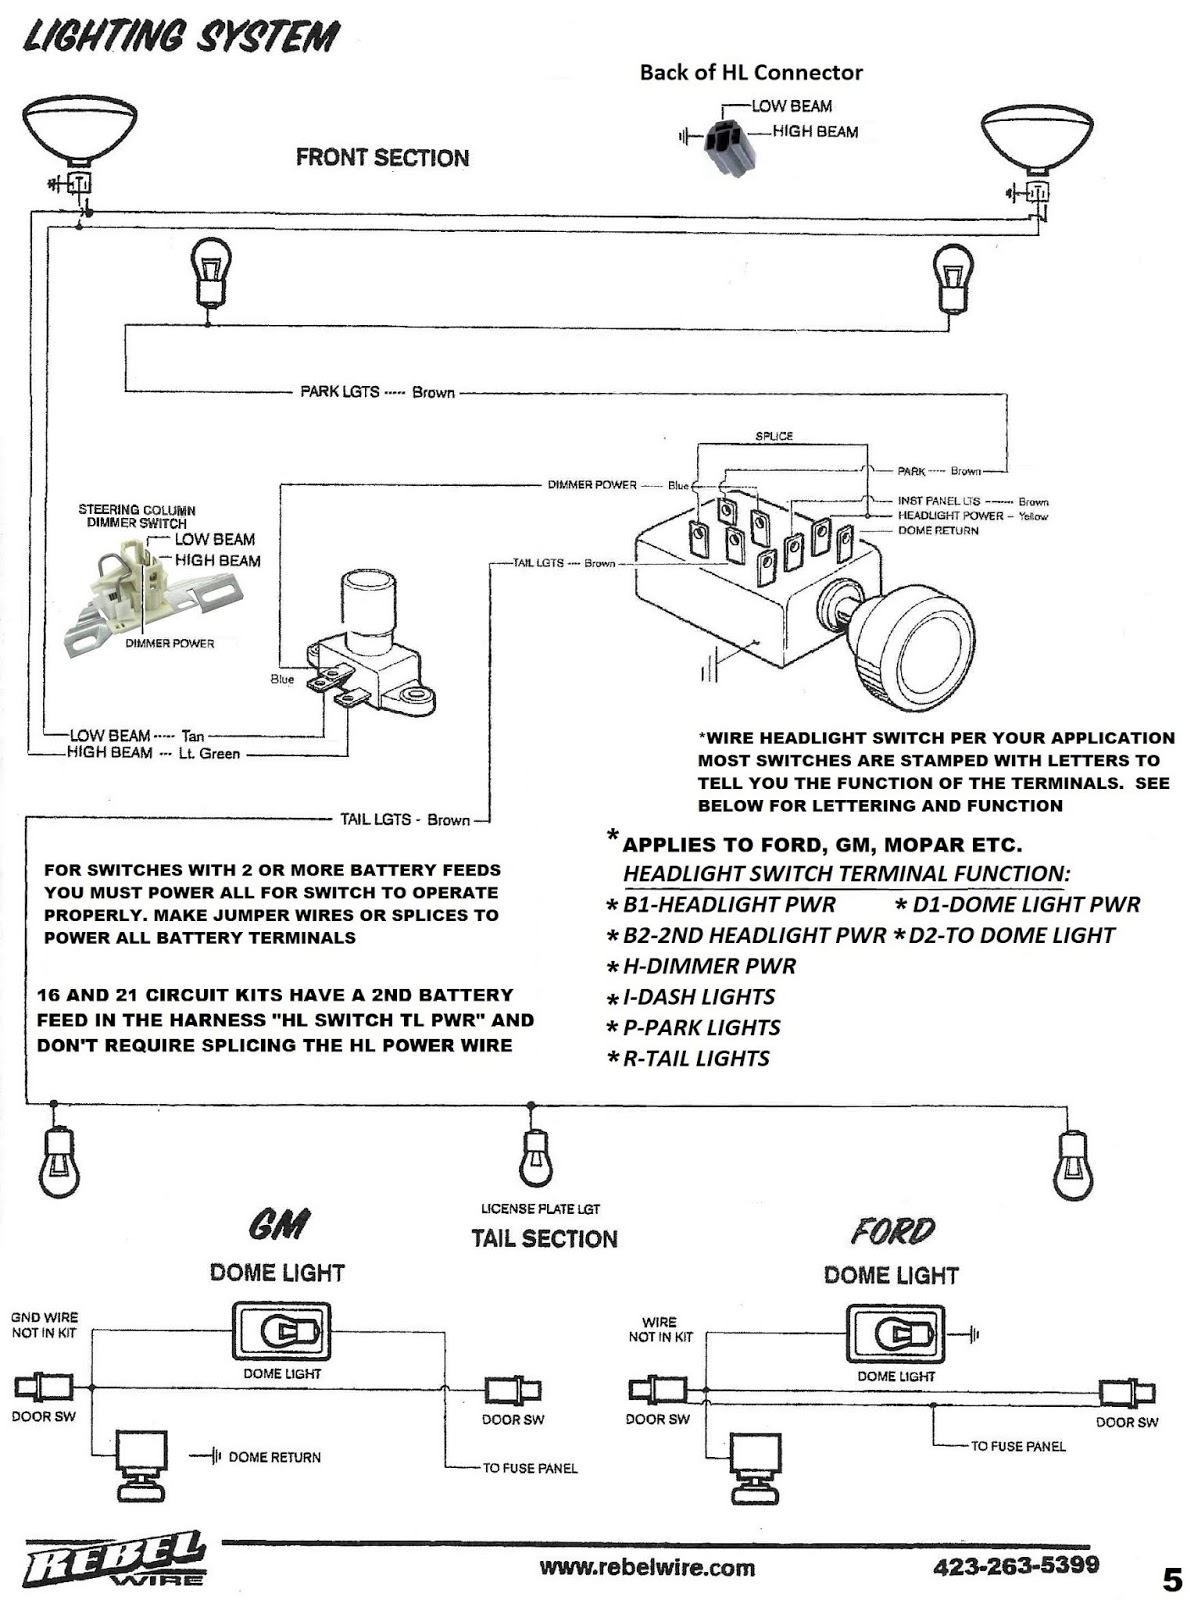 Gm Switch Wiring - Aspects of Wiring and Circuits on two-way switch schematic, two-way dimmer switch wiring diagrams, three switches one light diagram, two-way light switch installation, two lights one switch diagram, two-way speaker switch, two lights two switches diagram, two-way light switches google, two-way light switch with dimmer, 2 pole 3 wire diagram, step diagram, two-way light switches electrical, two-way switch wire, 2-way switch diagram, two-way switch one gang, two-way switch connection, 3 position toggle switch diagram, 3-way switch diagram, two-way switch and three way switch,